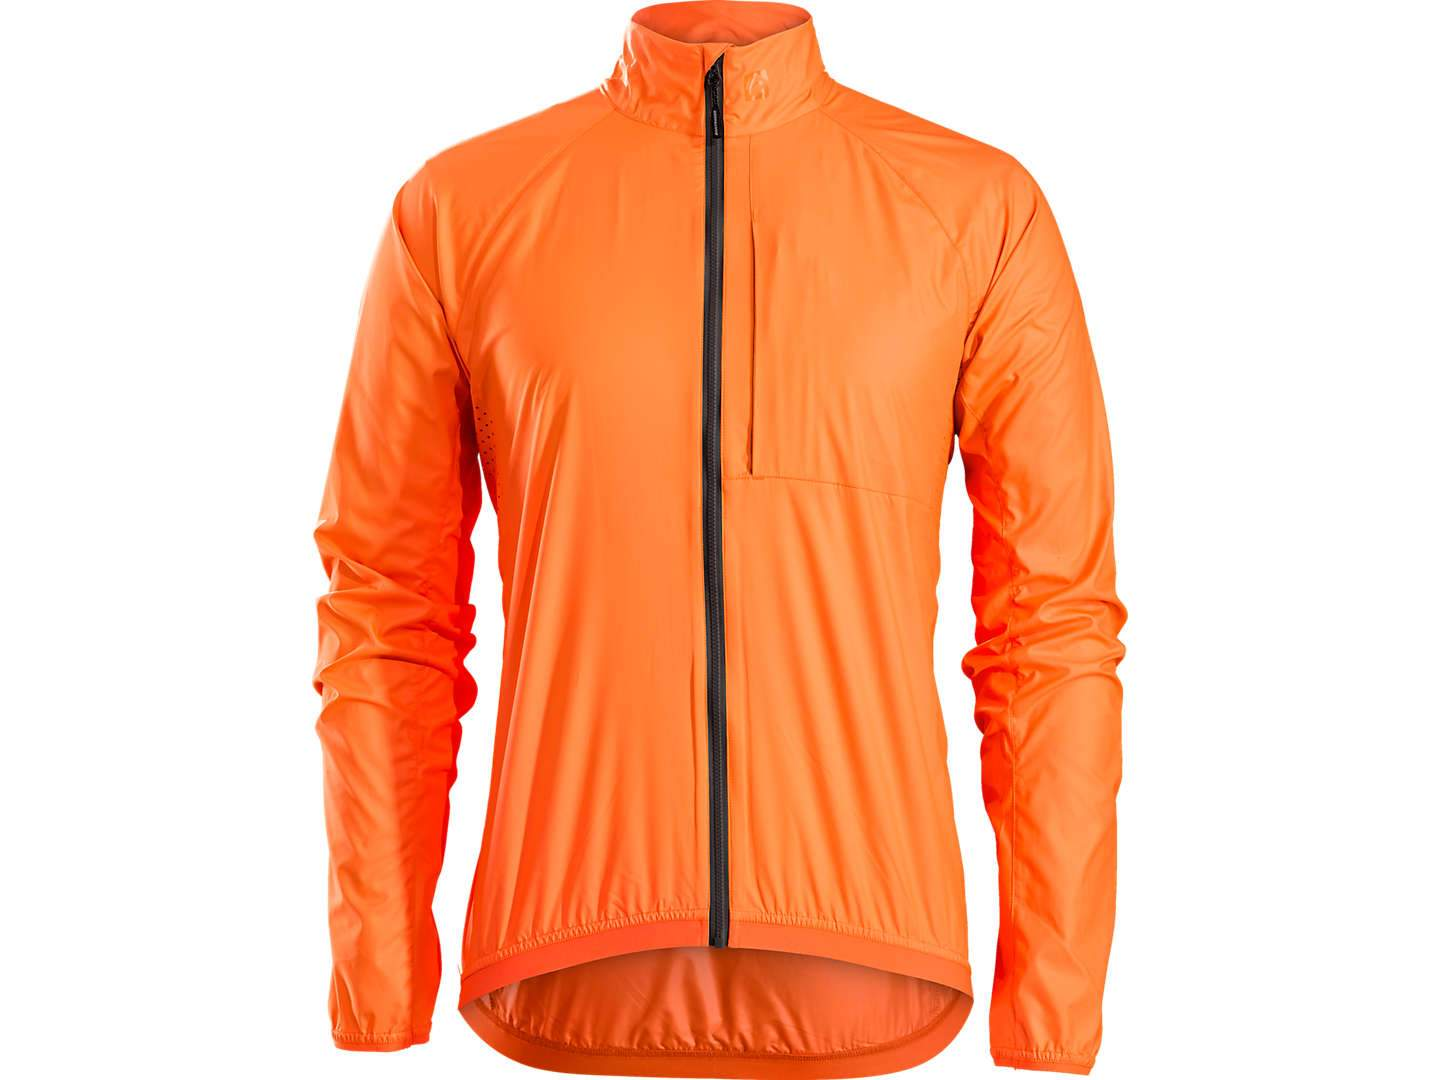 Bontrager Circuit Windshell Jacket - Cycles Galleria Melbourne